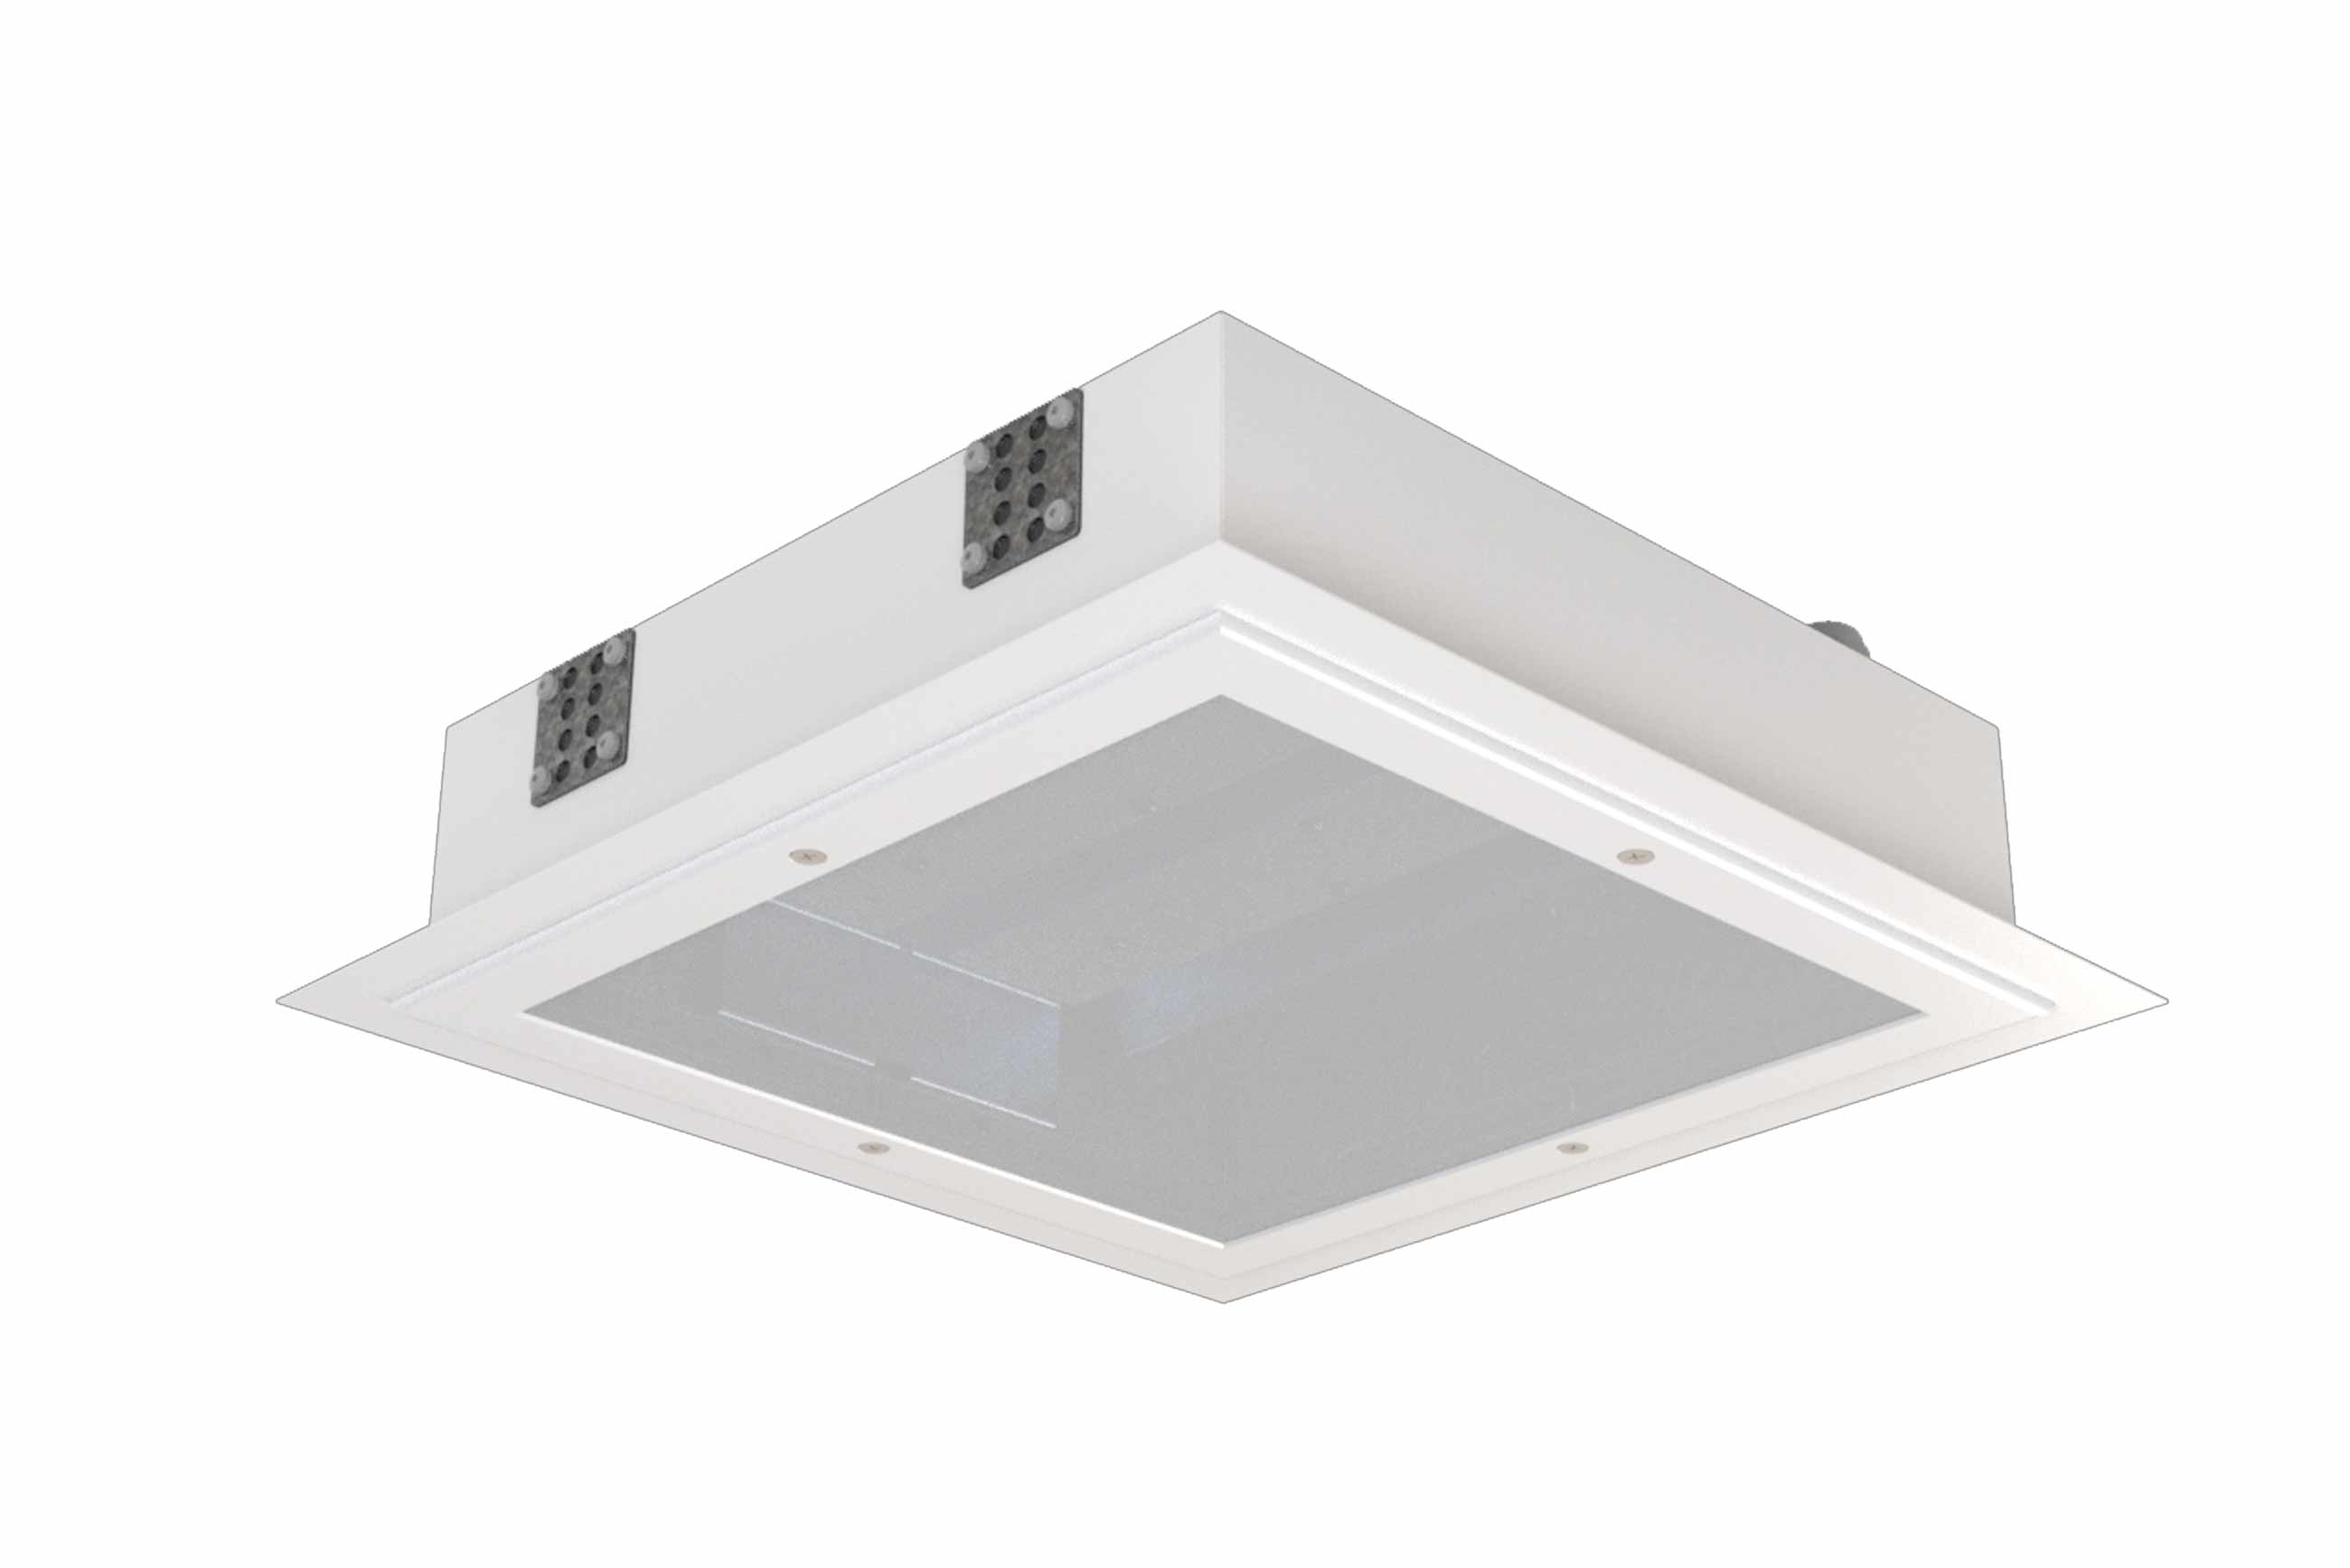 Draco Compact Recessed Led Luminaires For Cleanrooms